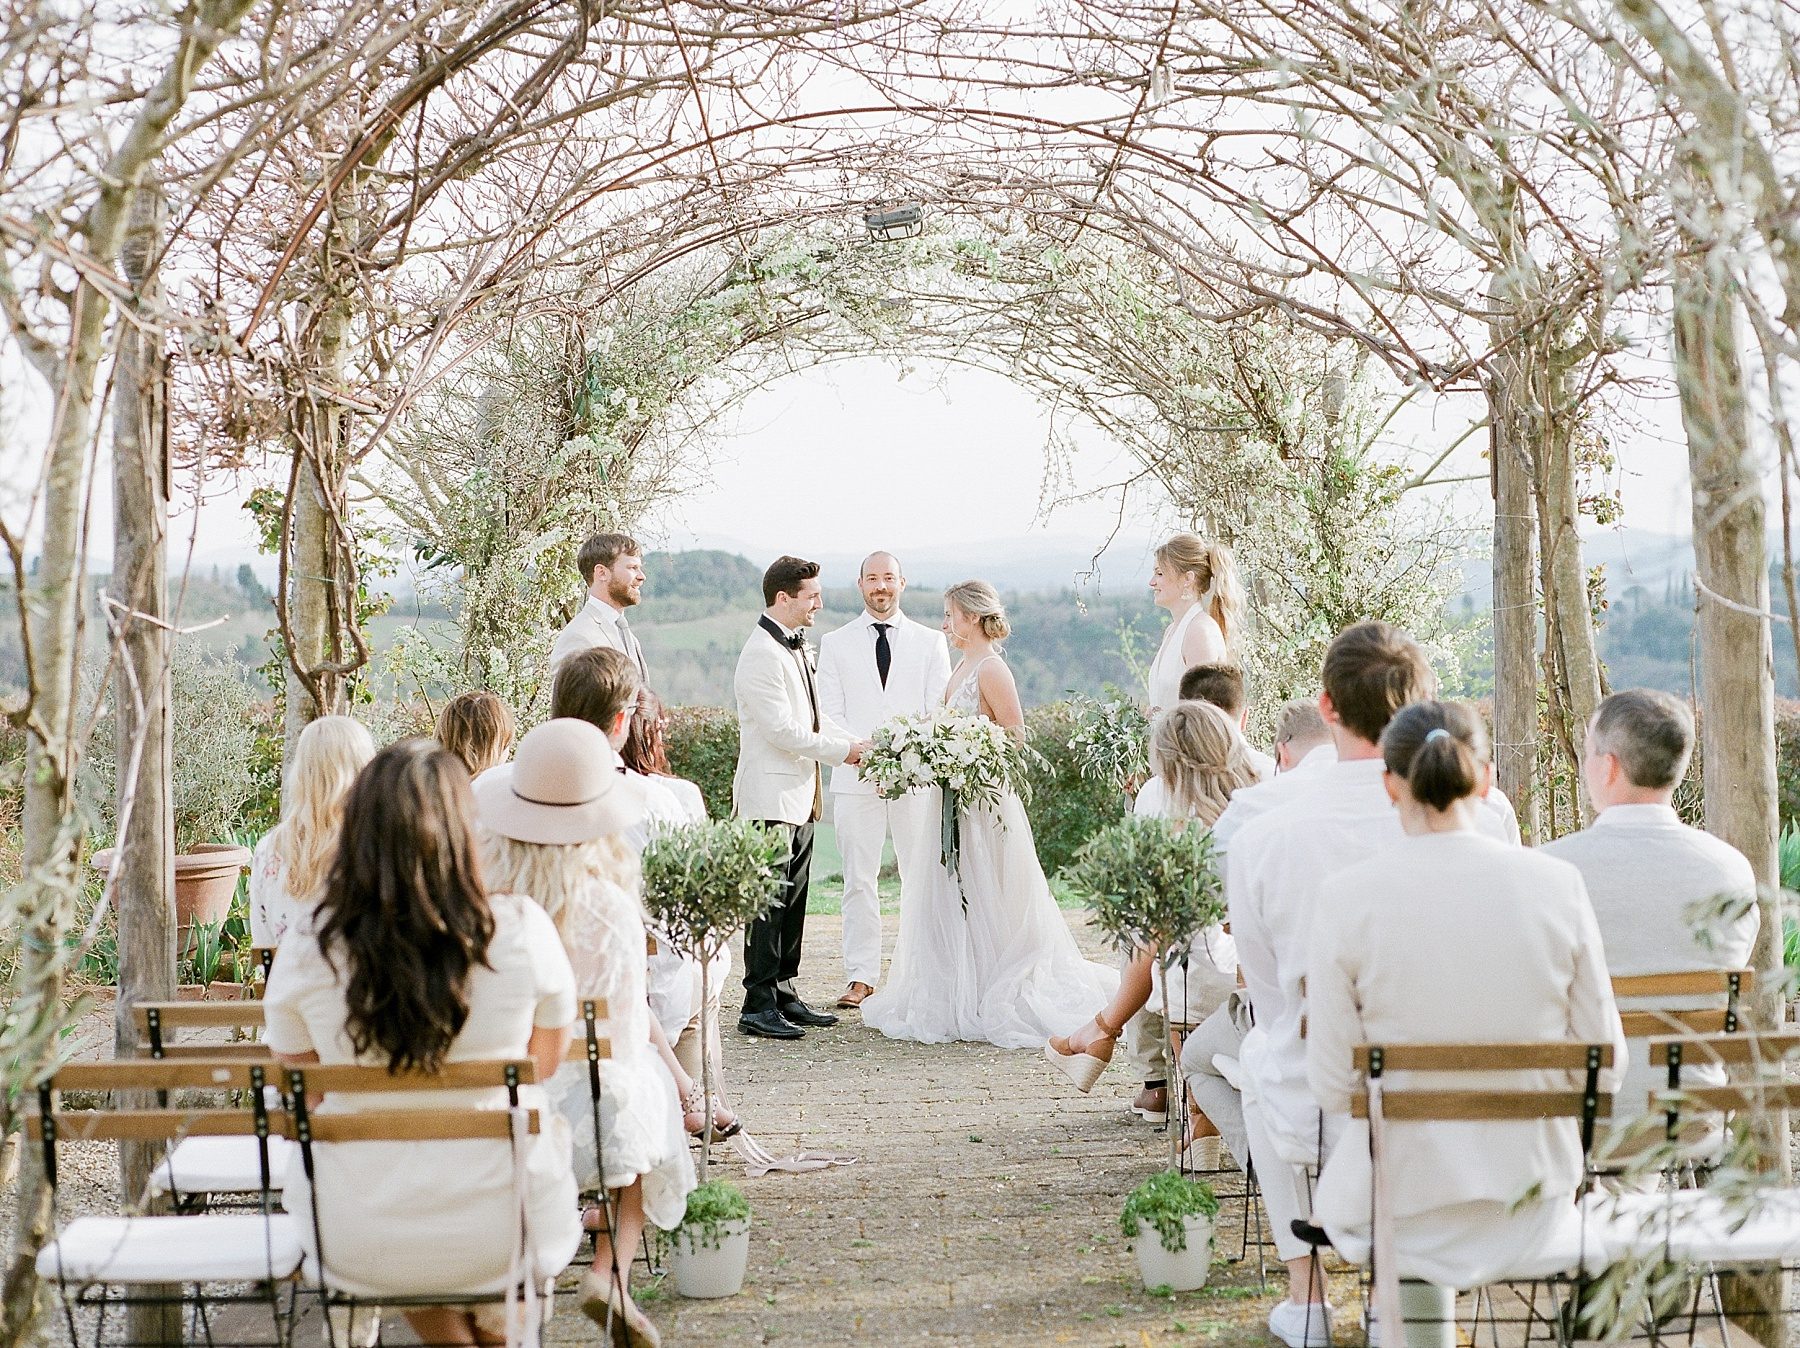 All White Destination Wedding in the Hills of Tuscany Italy at Estate Borgo Petrognano by Kelsi Kliethermes Photography_0018.jpg